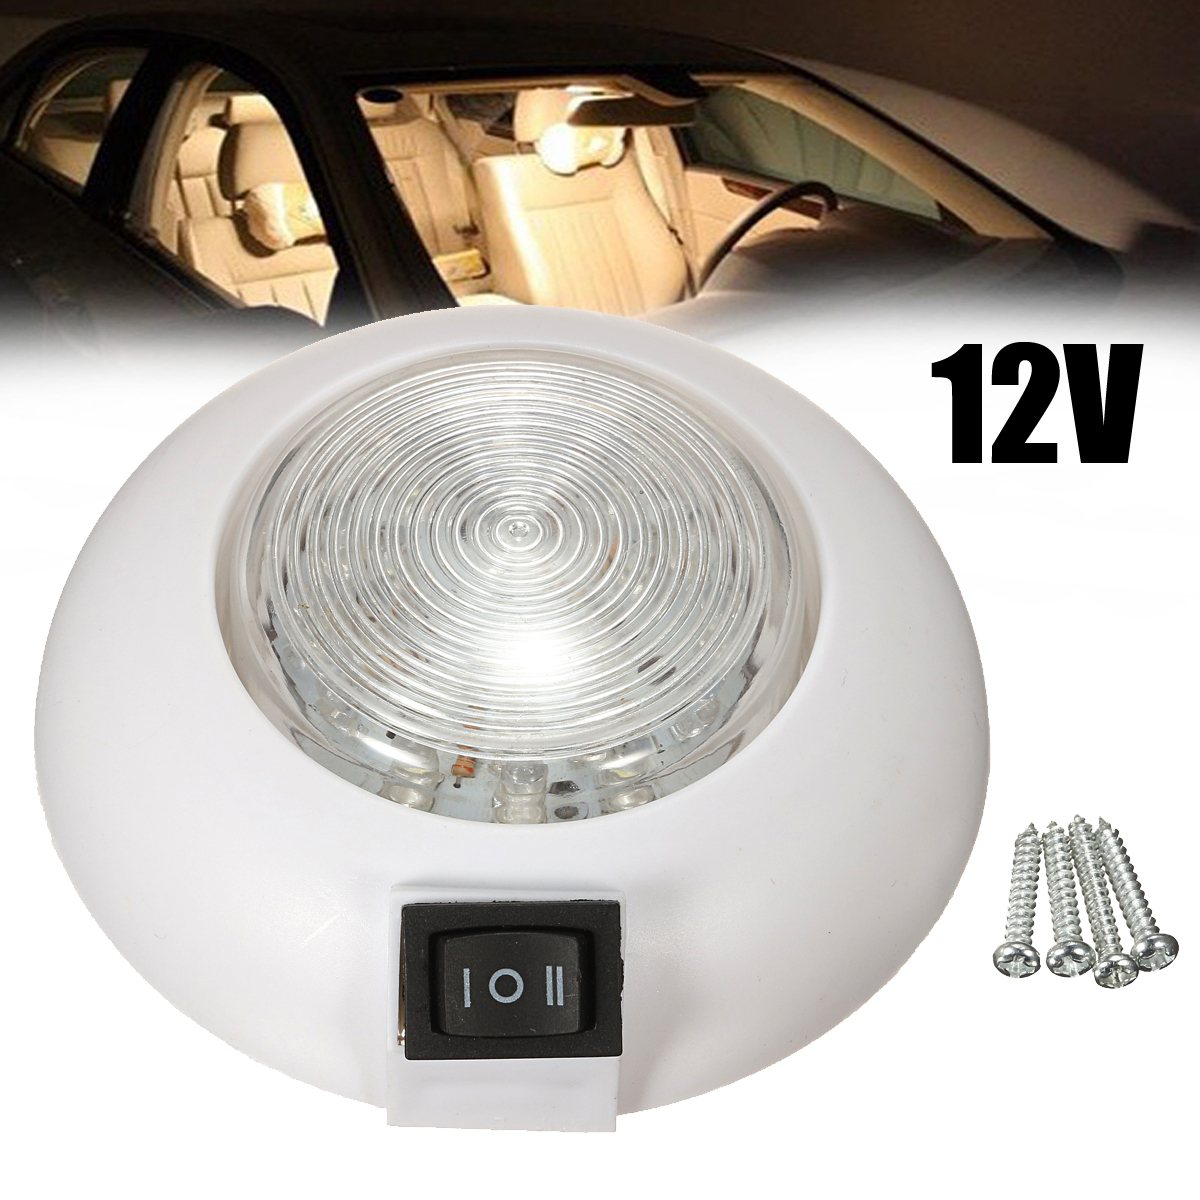 1pcs car led 12v dual whitered rv car boat interior lamp dome light 1pcs car led 12v dual whitered rv car boat interior lamp dome light reading light in signal lamp from automobiles motorcycles on aliexpress alibaba arubaitofo Gallery